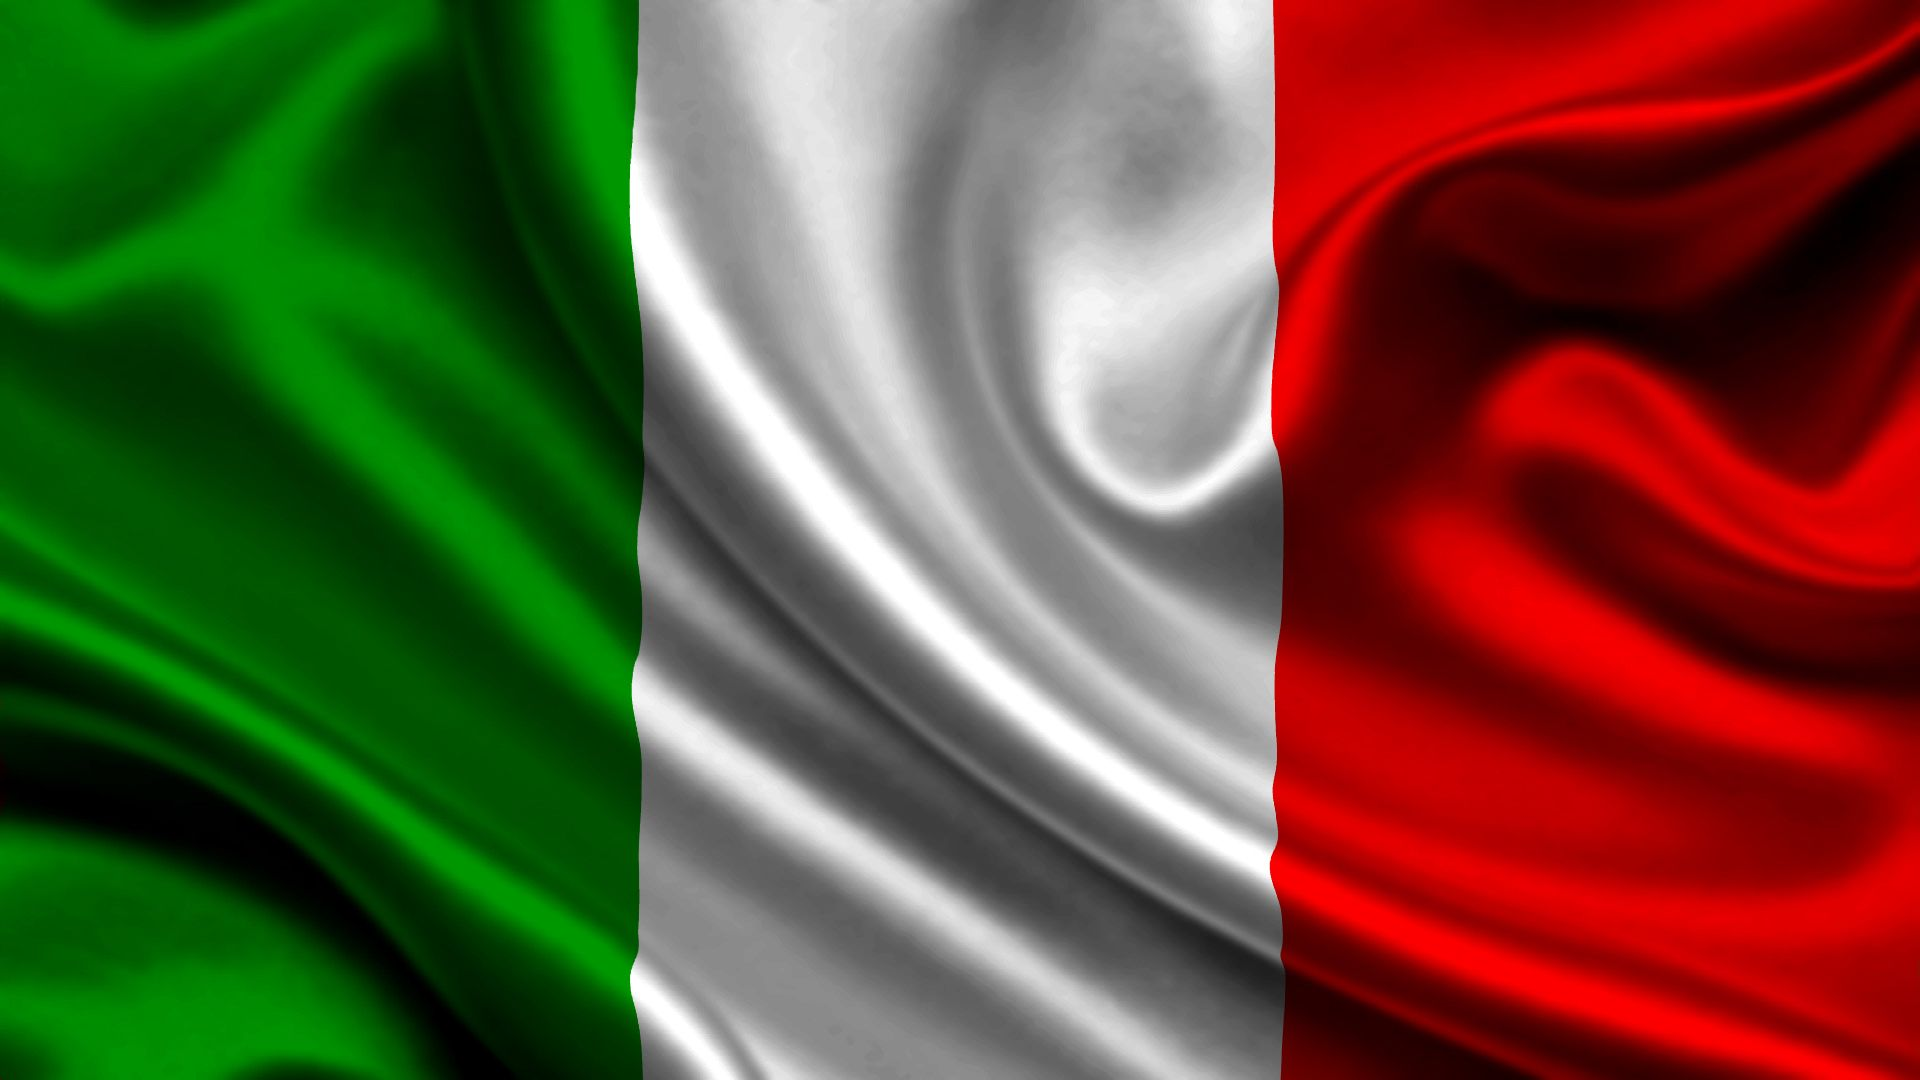 Pin By Jacqueline Mouchon On Italia Bella Italy Flag France Flag Ireland Facts